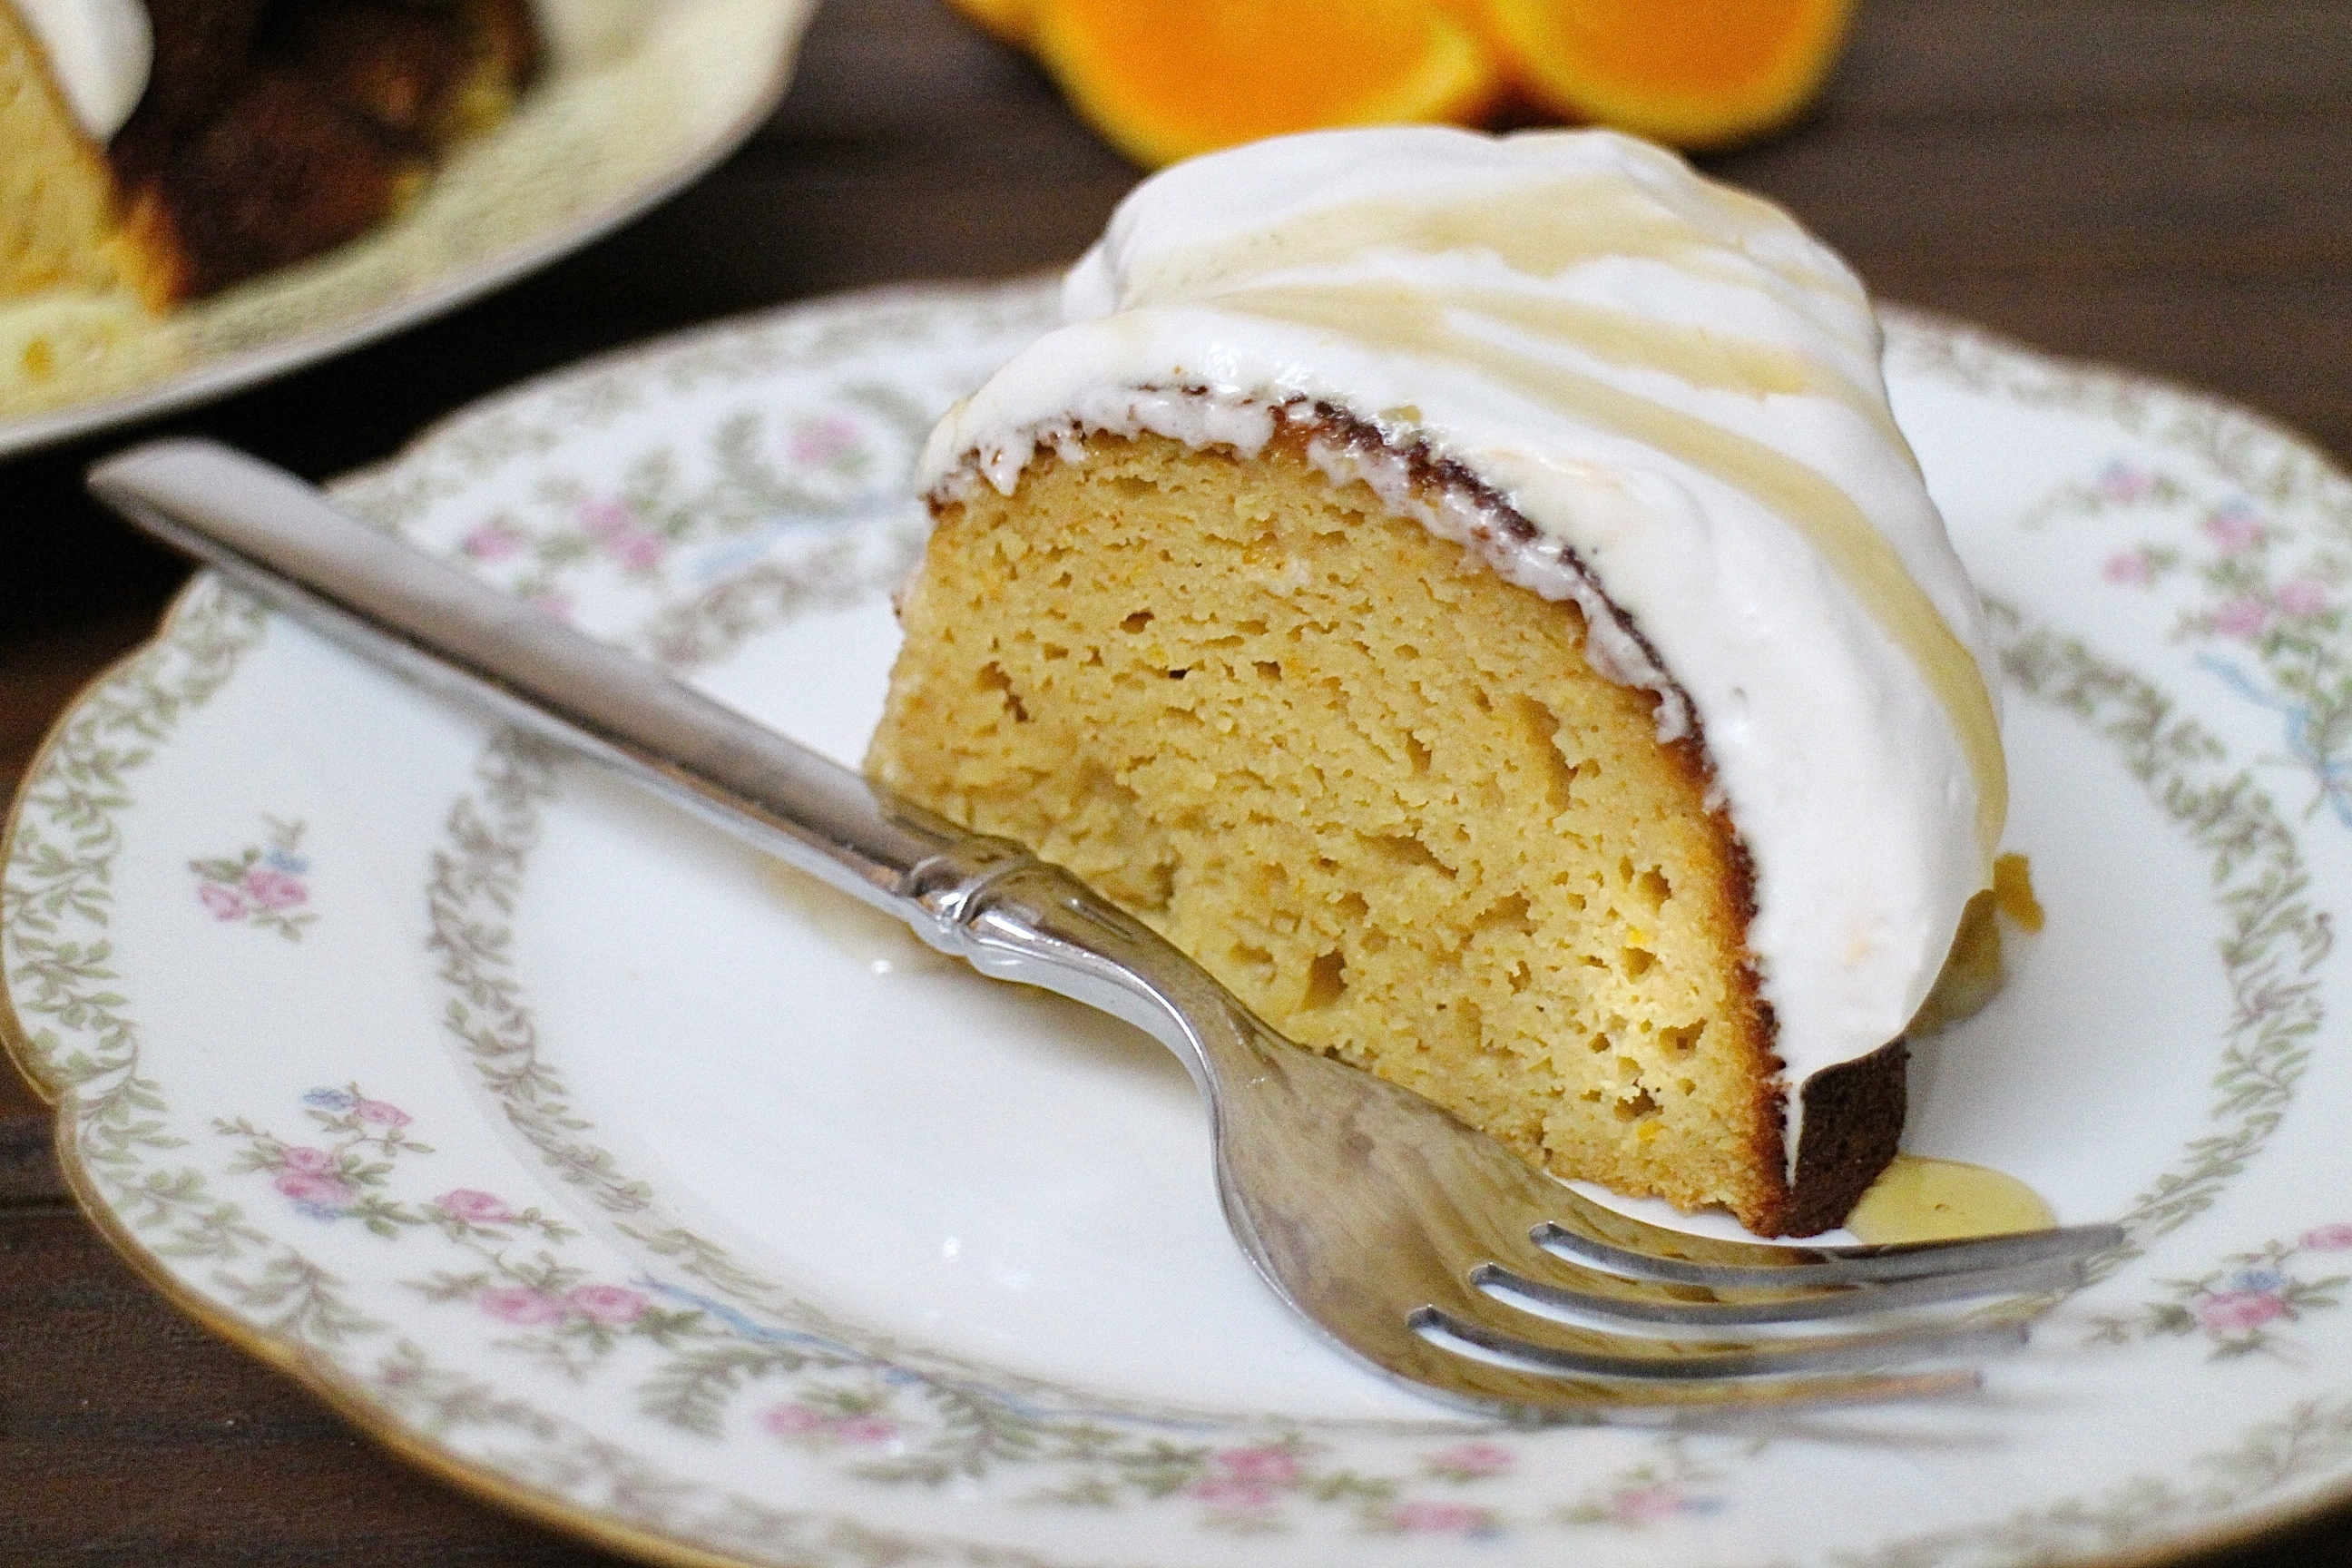 Coconut Orange Bundt Cake with Coconut Whipped Cream #Bundtbakers